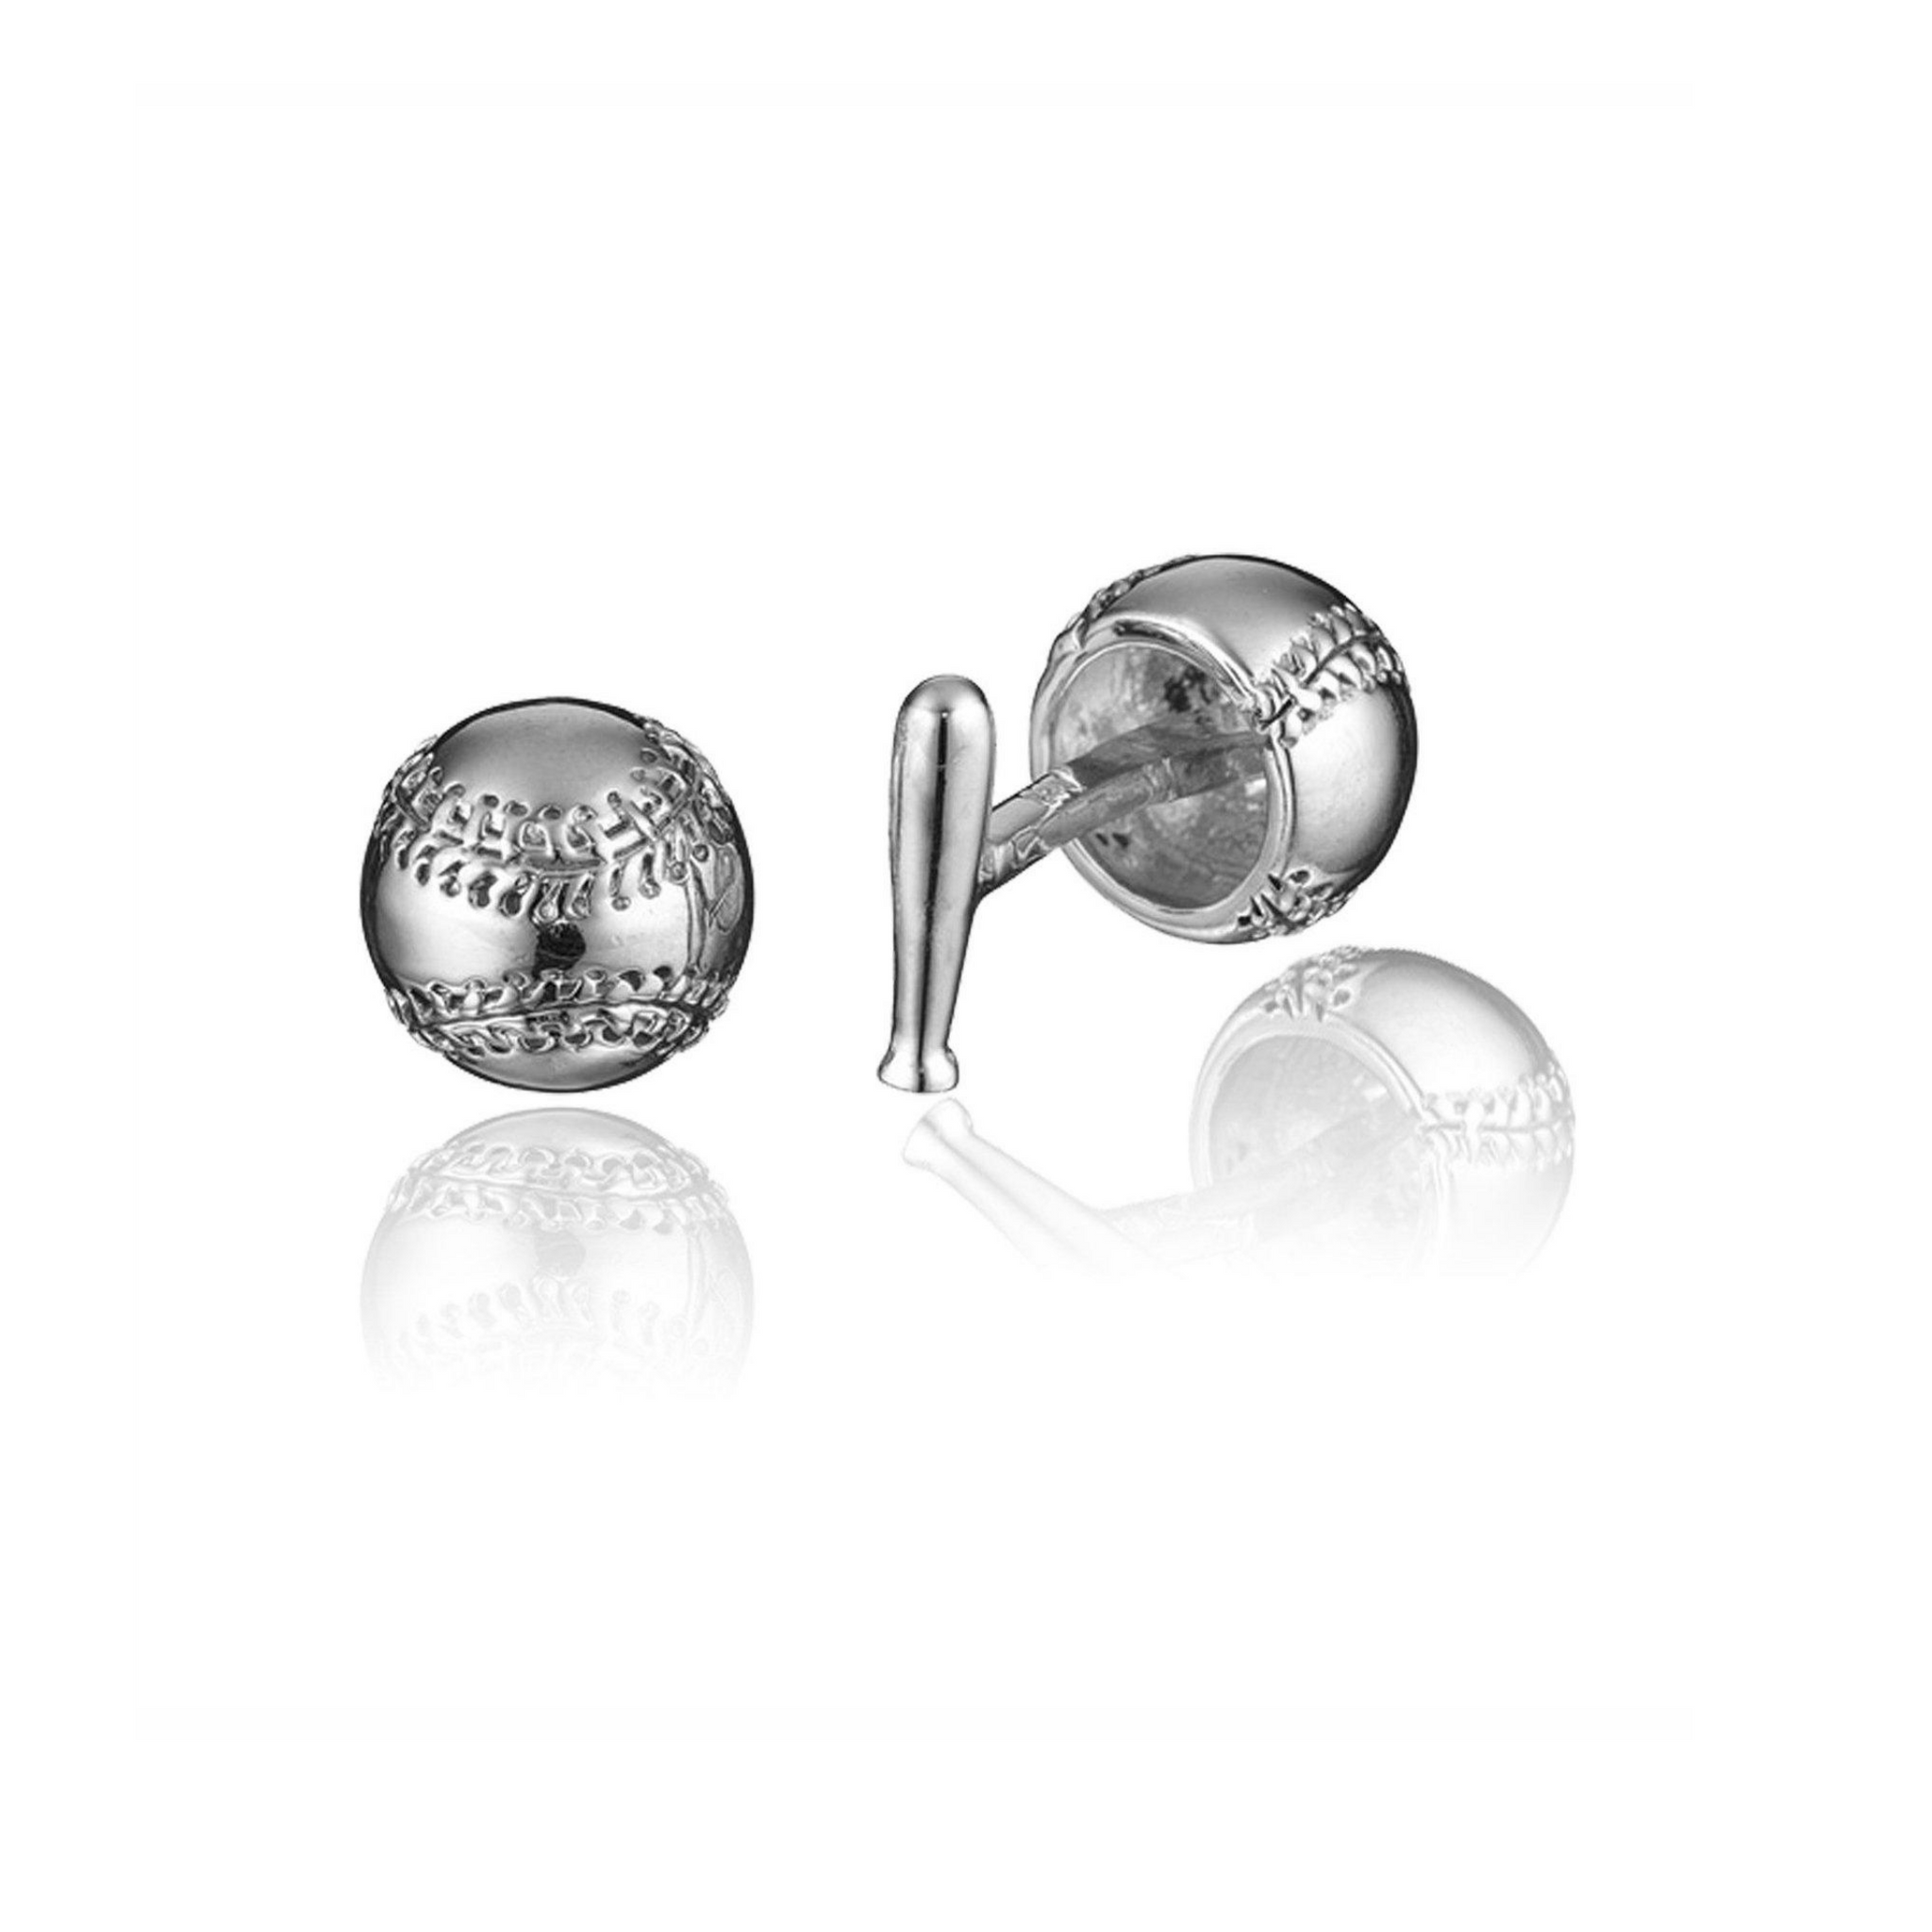 Sterling Silver Baseball & Bat Cufflinks